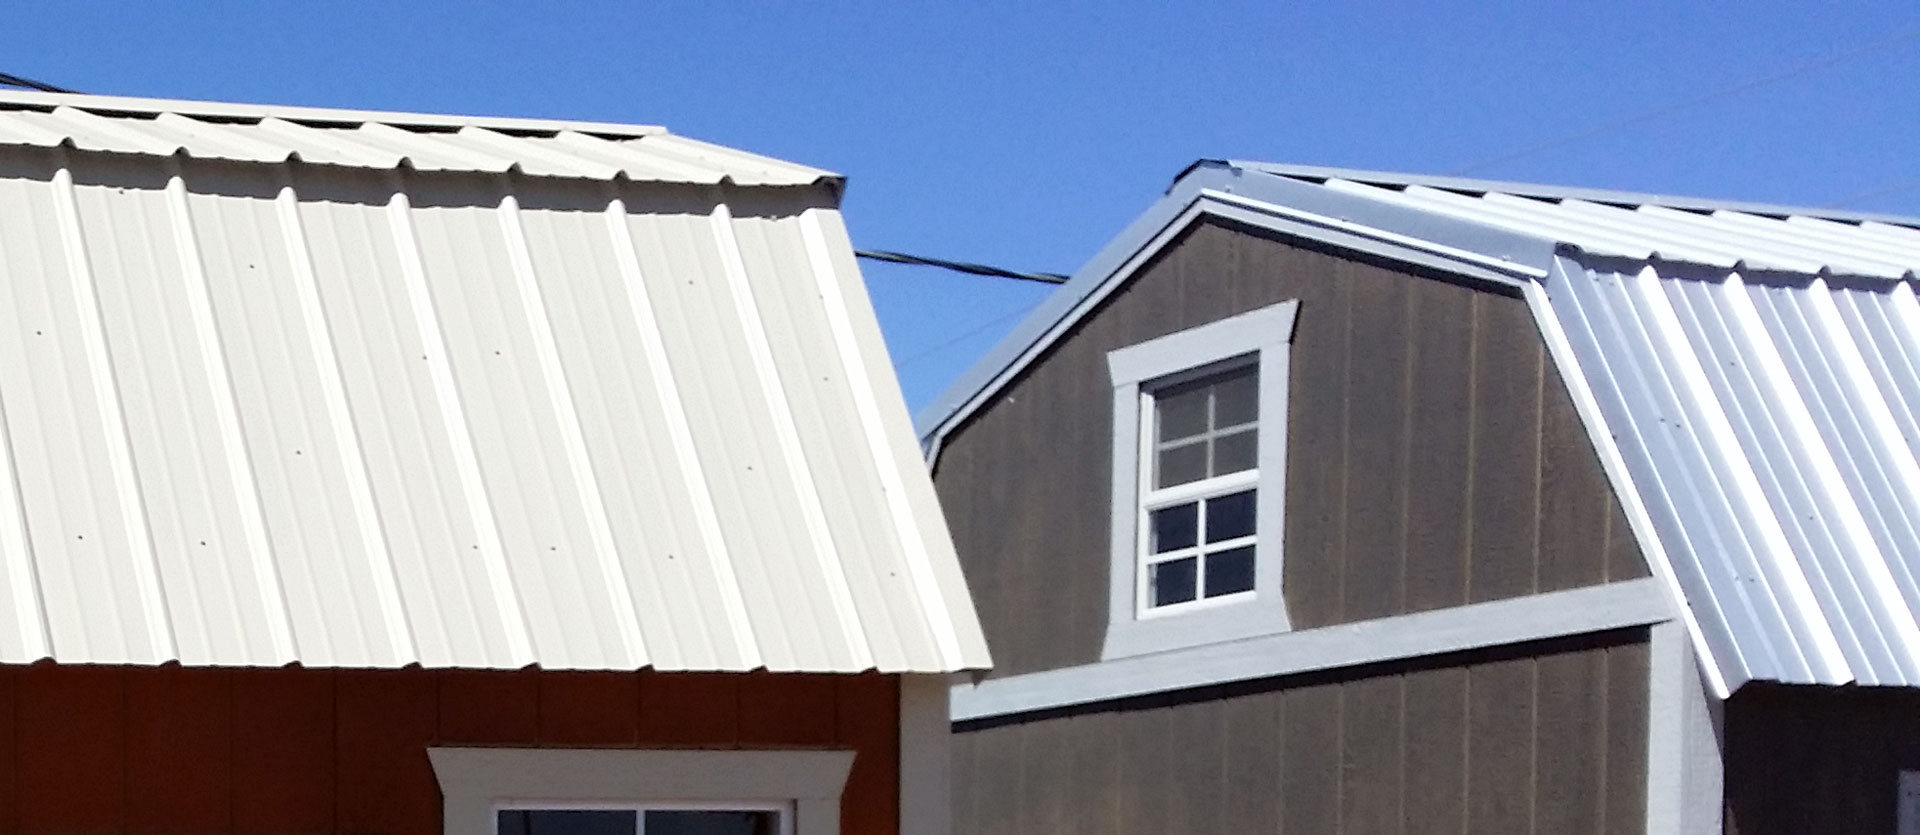 How To Install A Metal Roof Instead Of Shingles On Your Shed